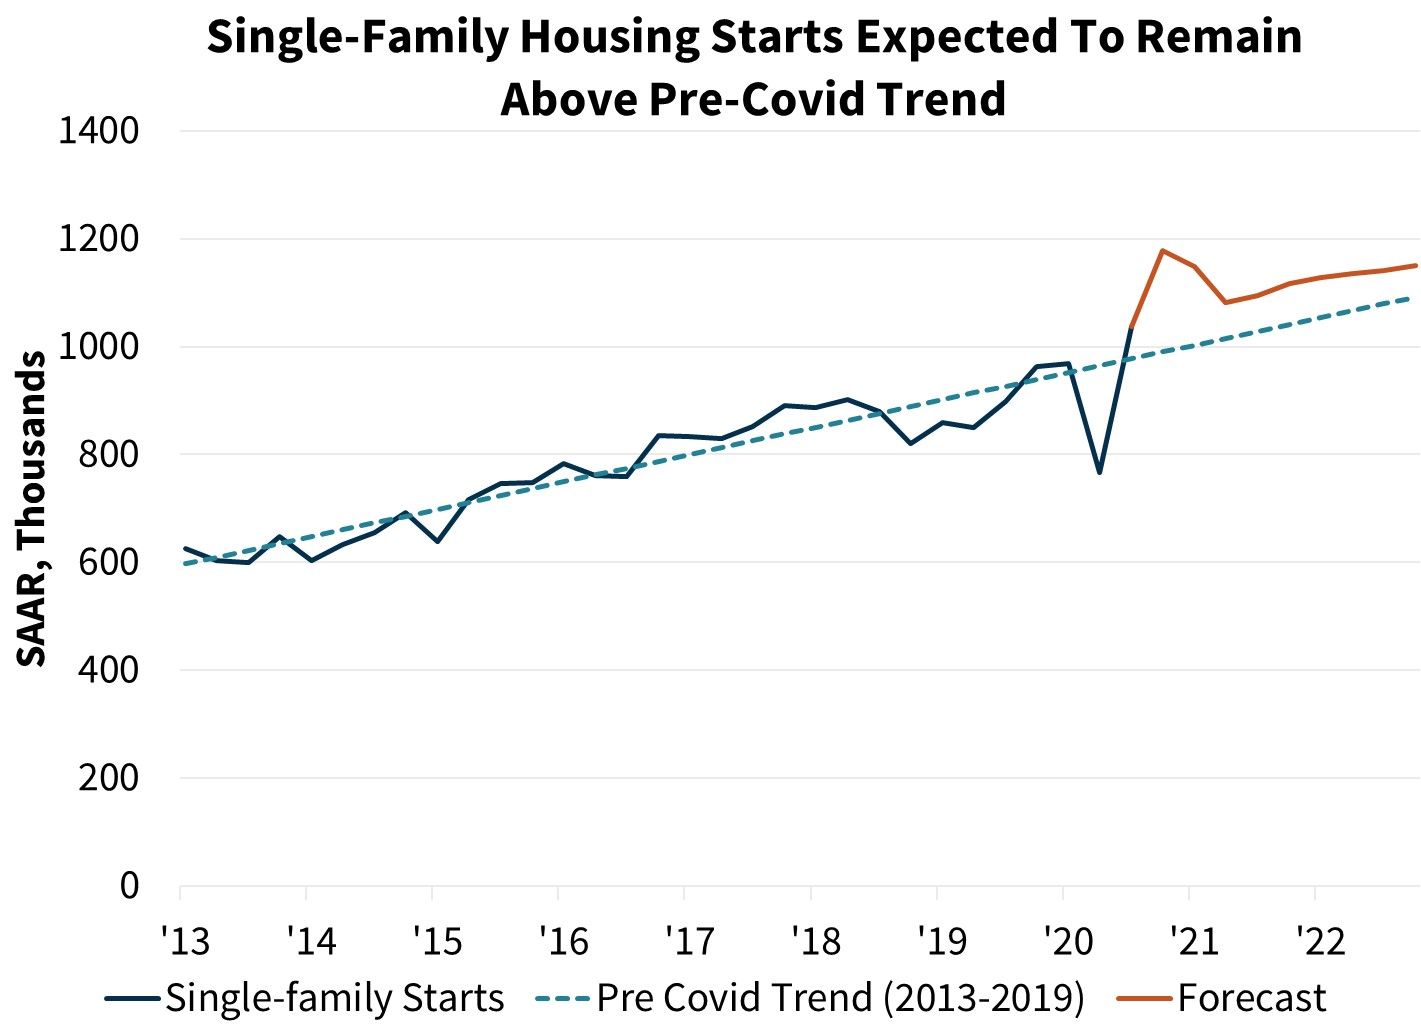 Single-Family Housing Starts Expected to Remain Above Pre-Covid Trend